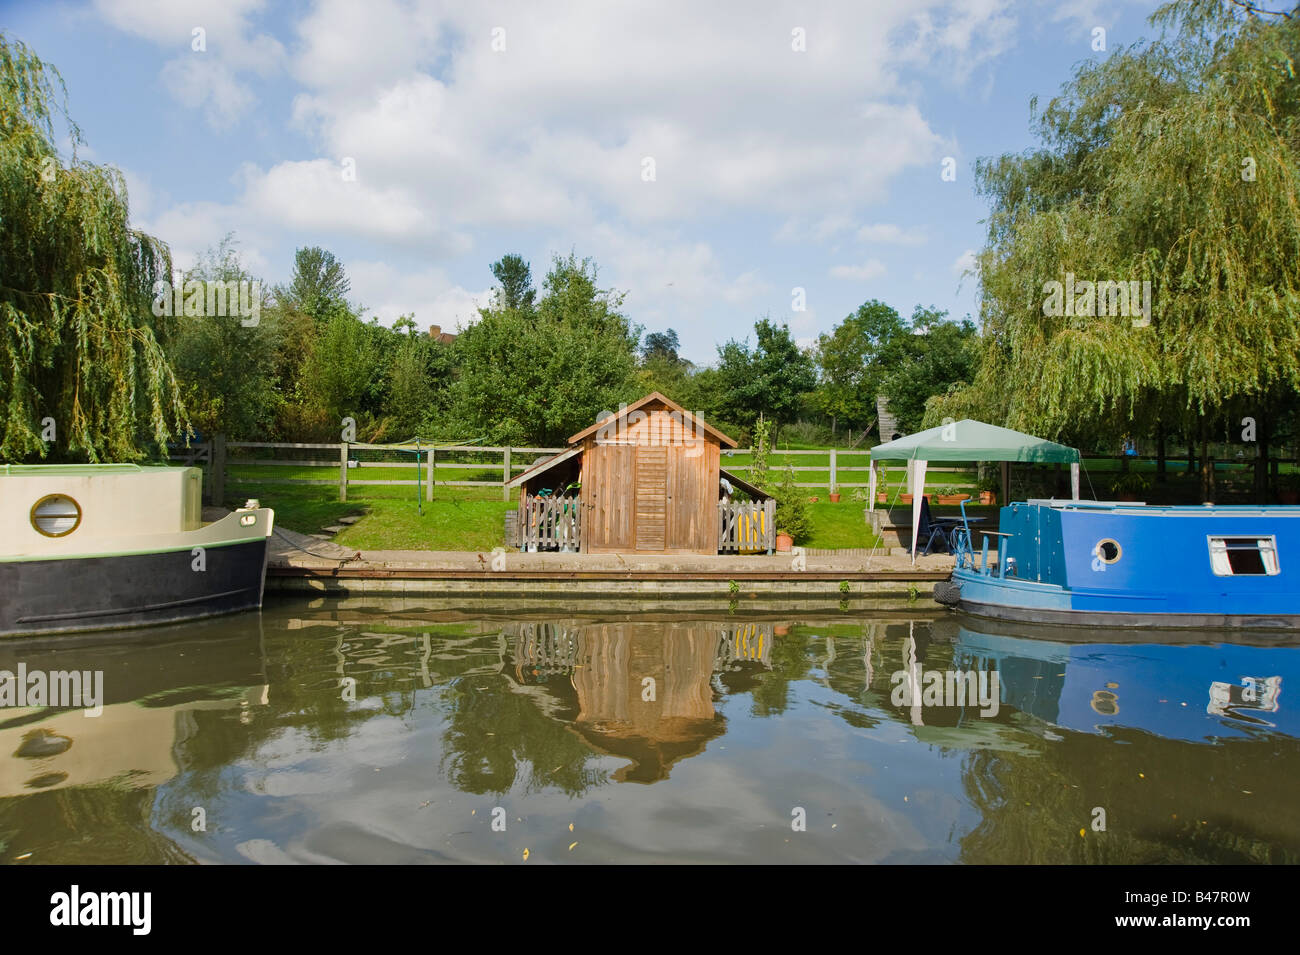 Waterside mooring with two boats and a chalet Grand union canal West London - Stock Image